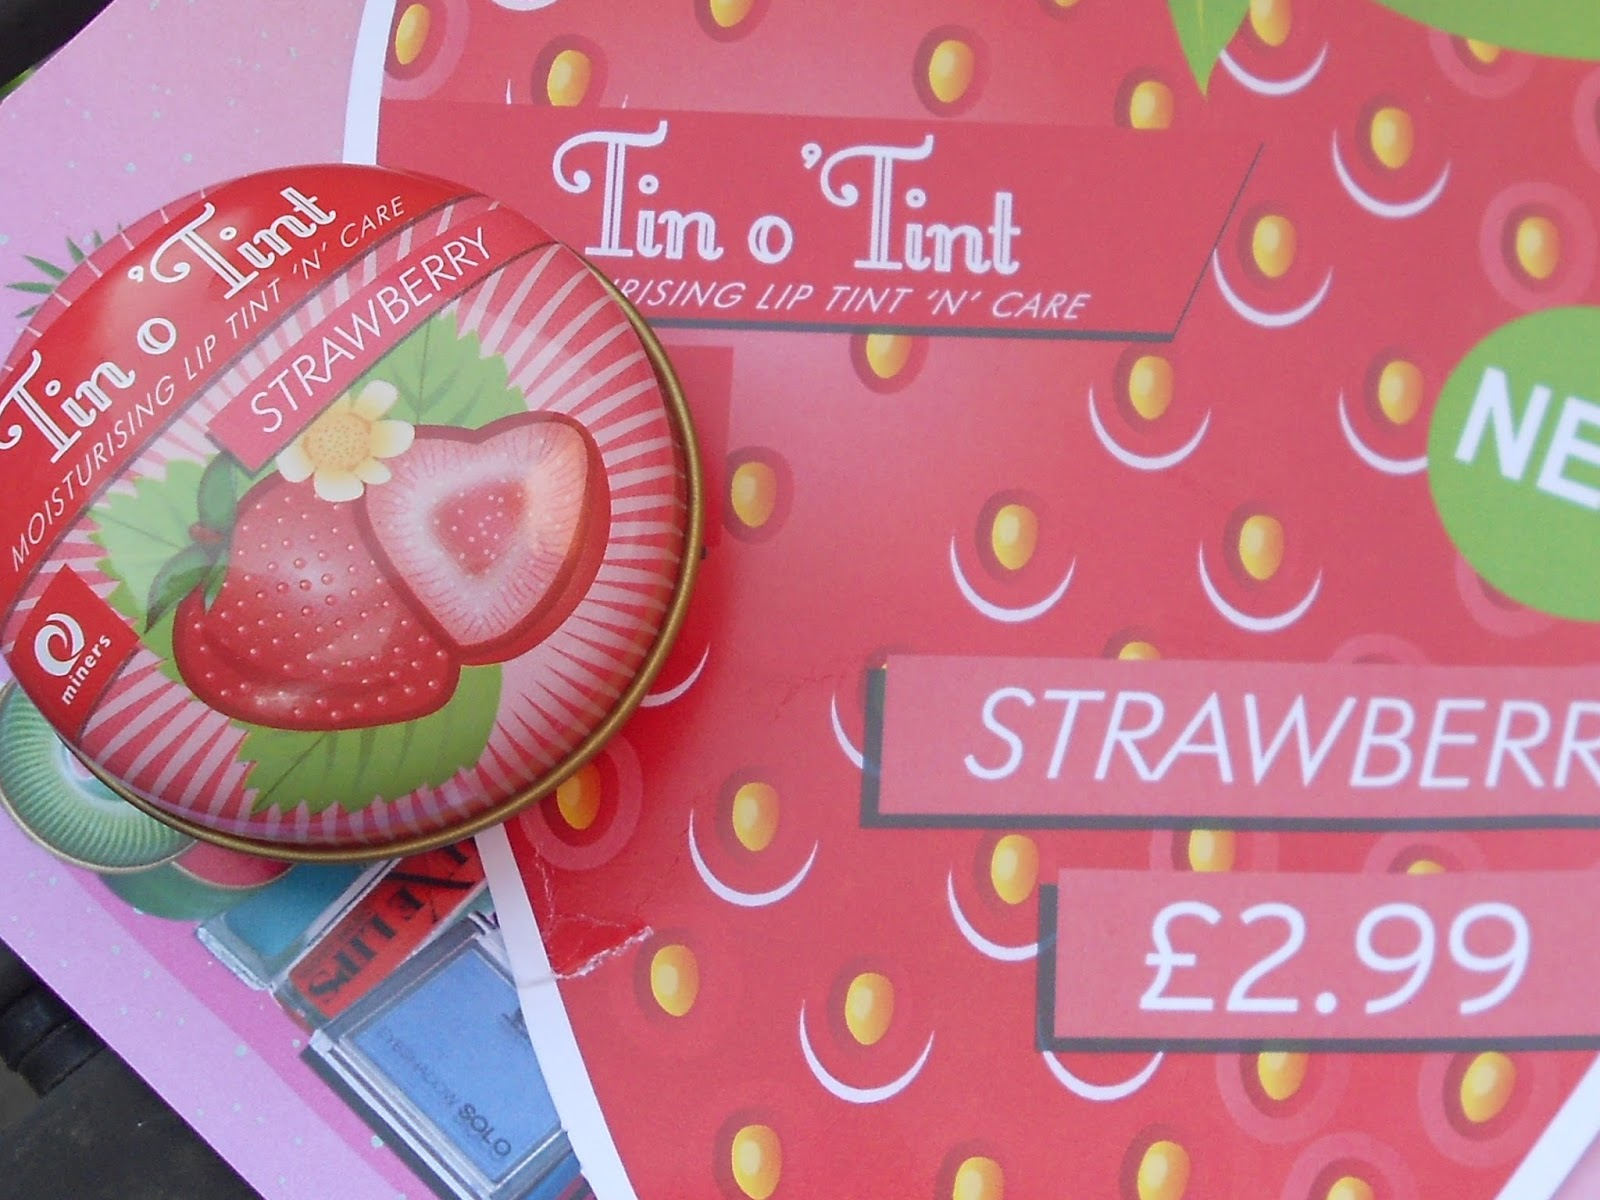 miners tin o tint strawberry review